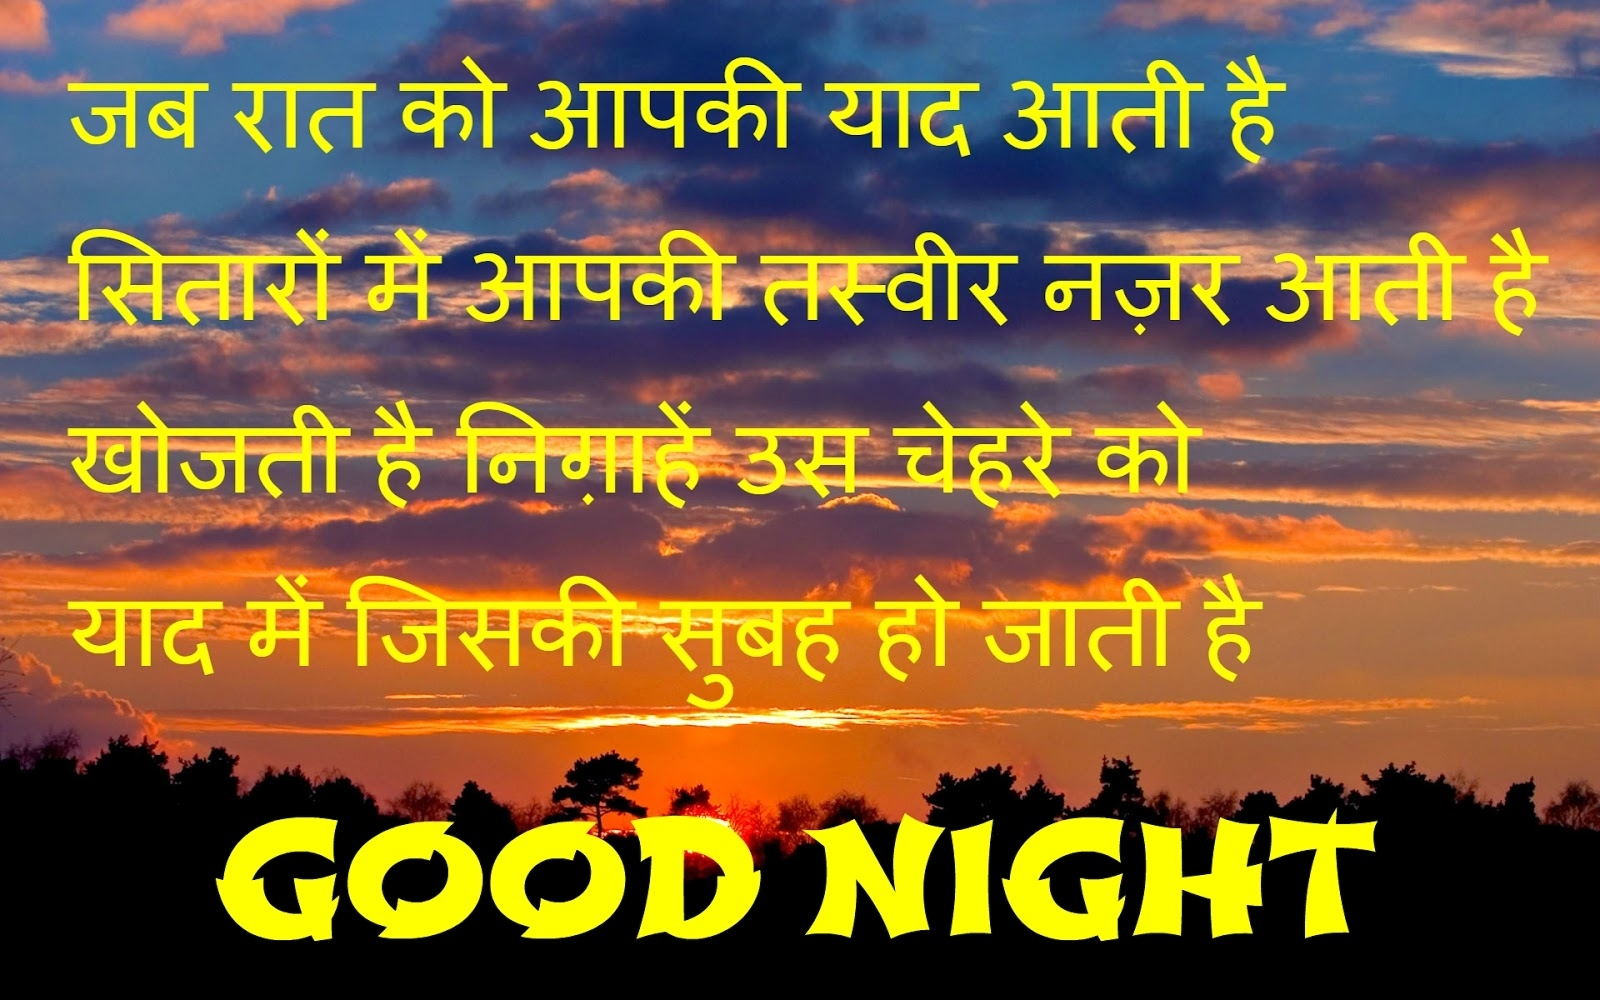 Good Night Hindi Quotes Love Good Night Images With Love Quotes In